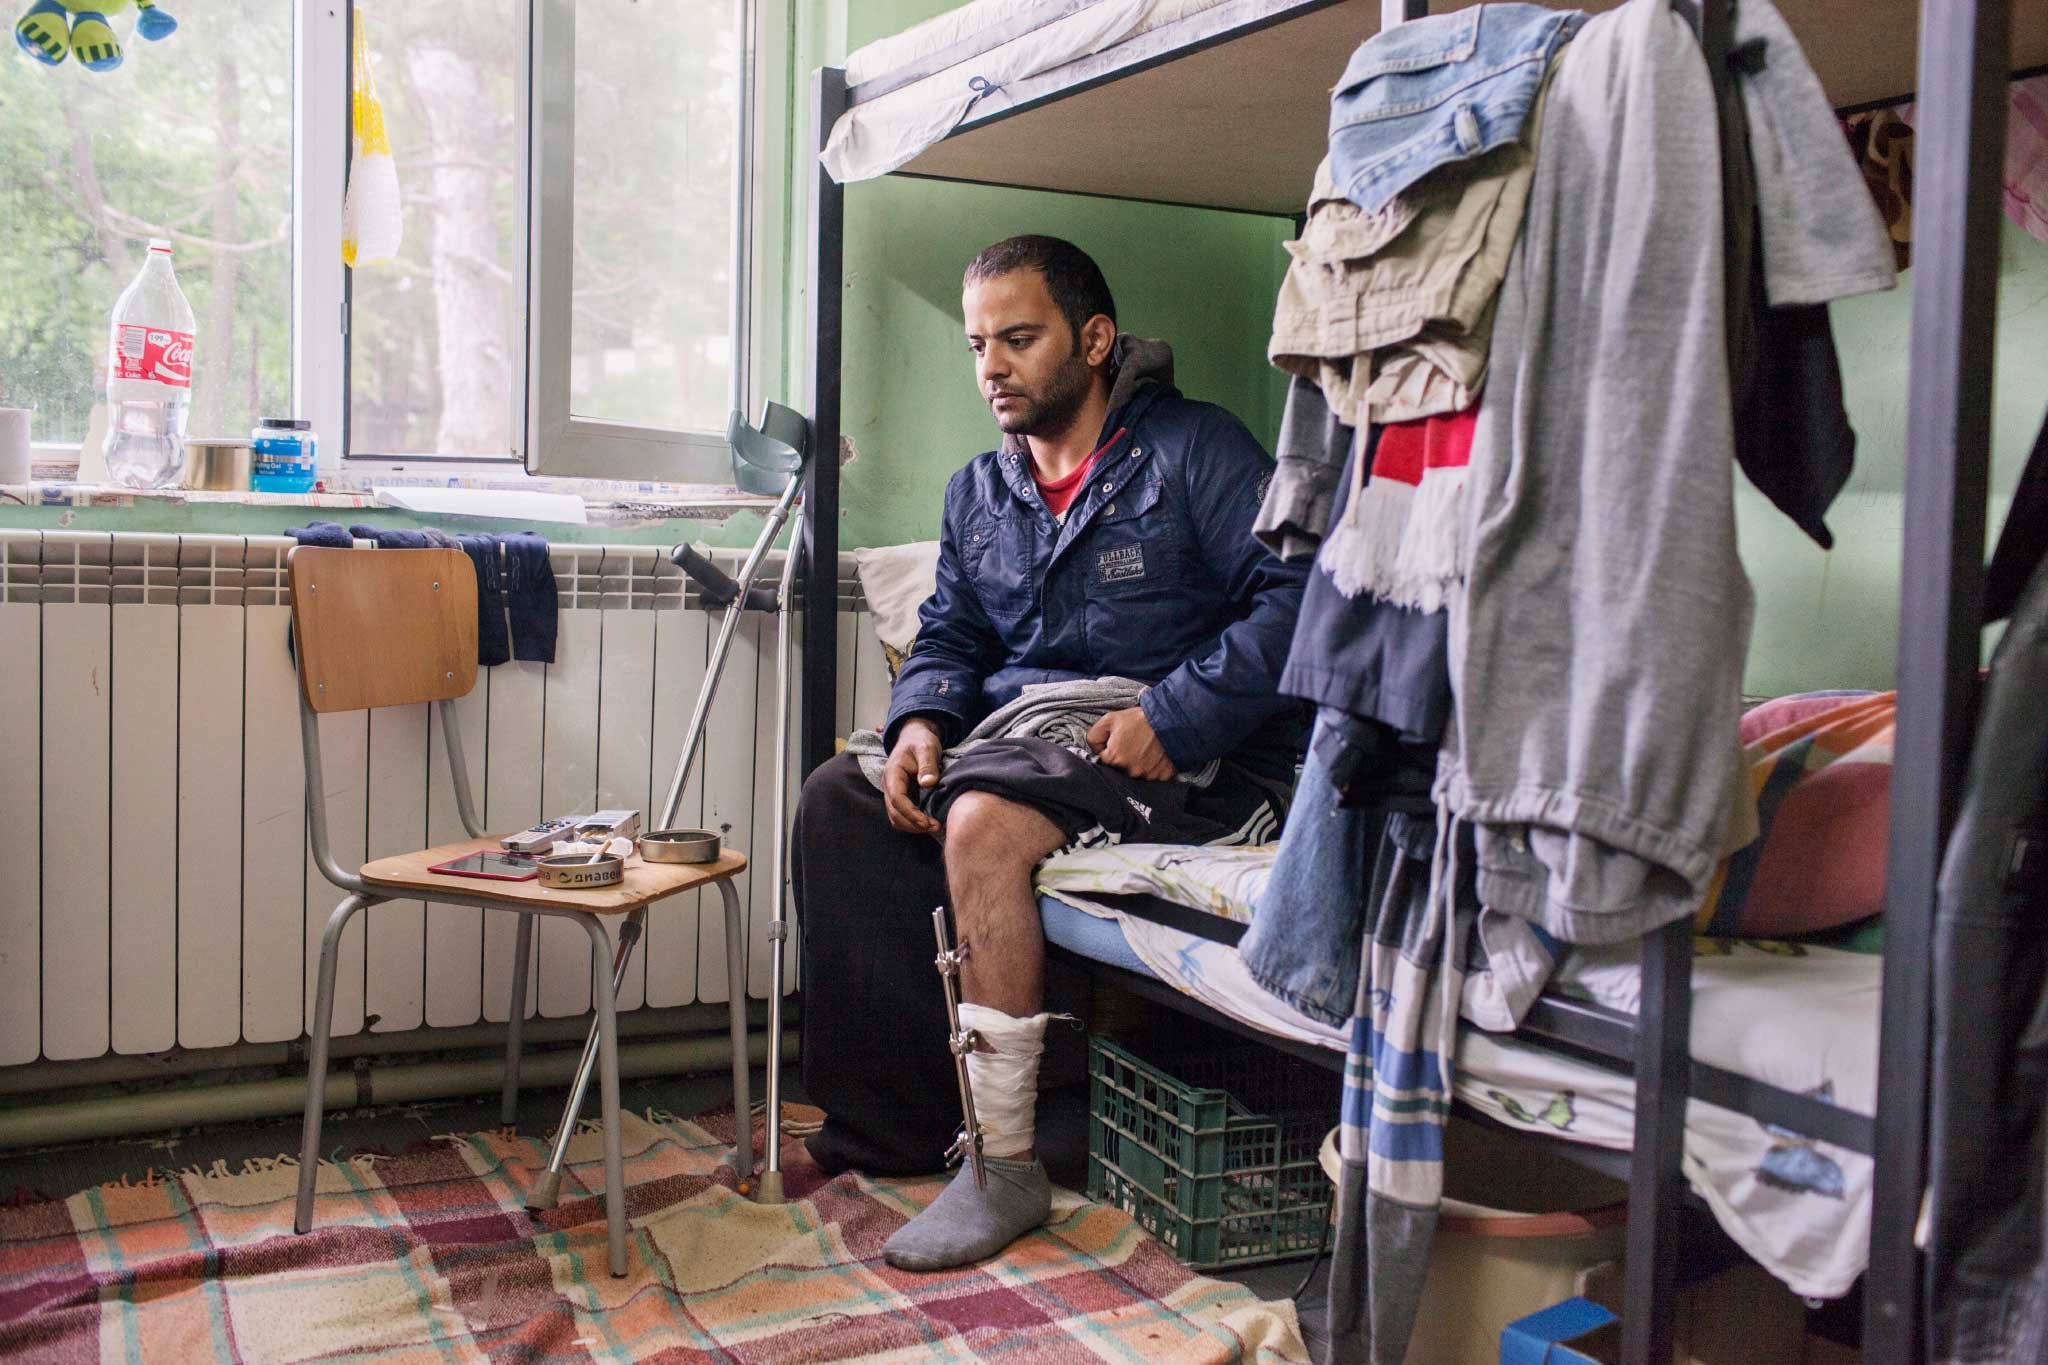 Nezarisa Sakhi, a 31-year-old Iraqi, in Banya refugee center in Bulgaria on May 16, 2014. Sakhi was attacked on the evening of Sept. 16, 2013 by nine Bulgarians, one of whom Nezarisa says had a knife. He was beaten and pushed off a bridge, breaking his leg.